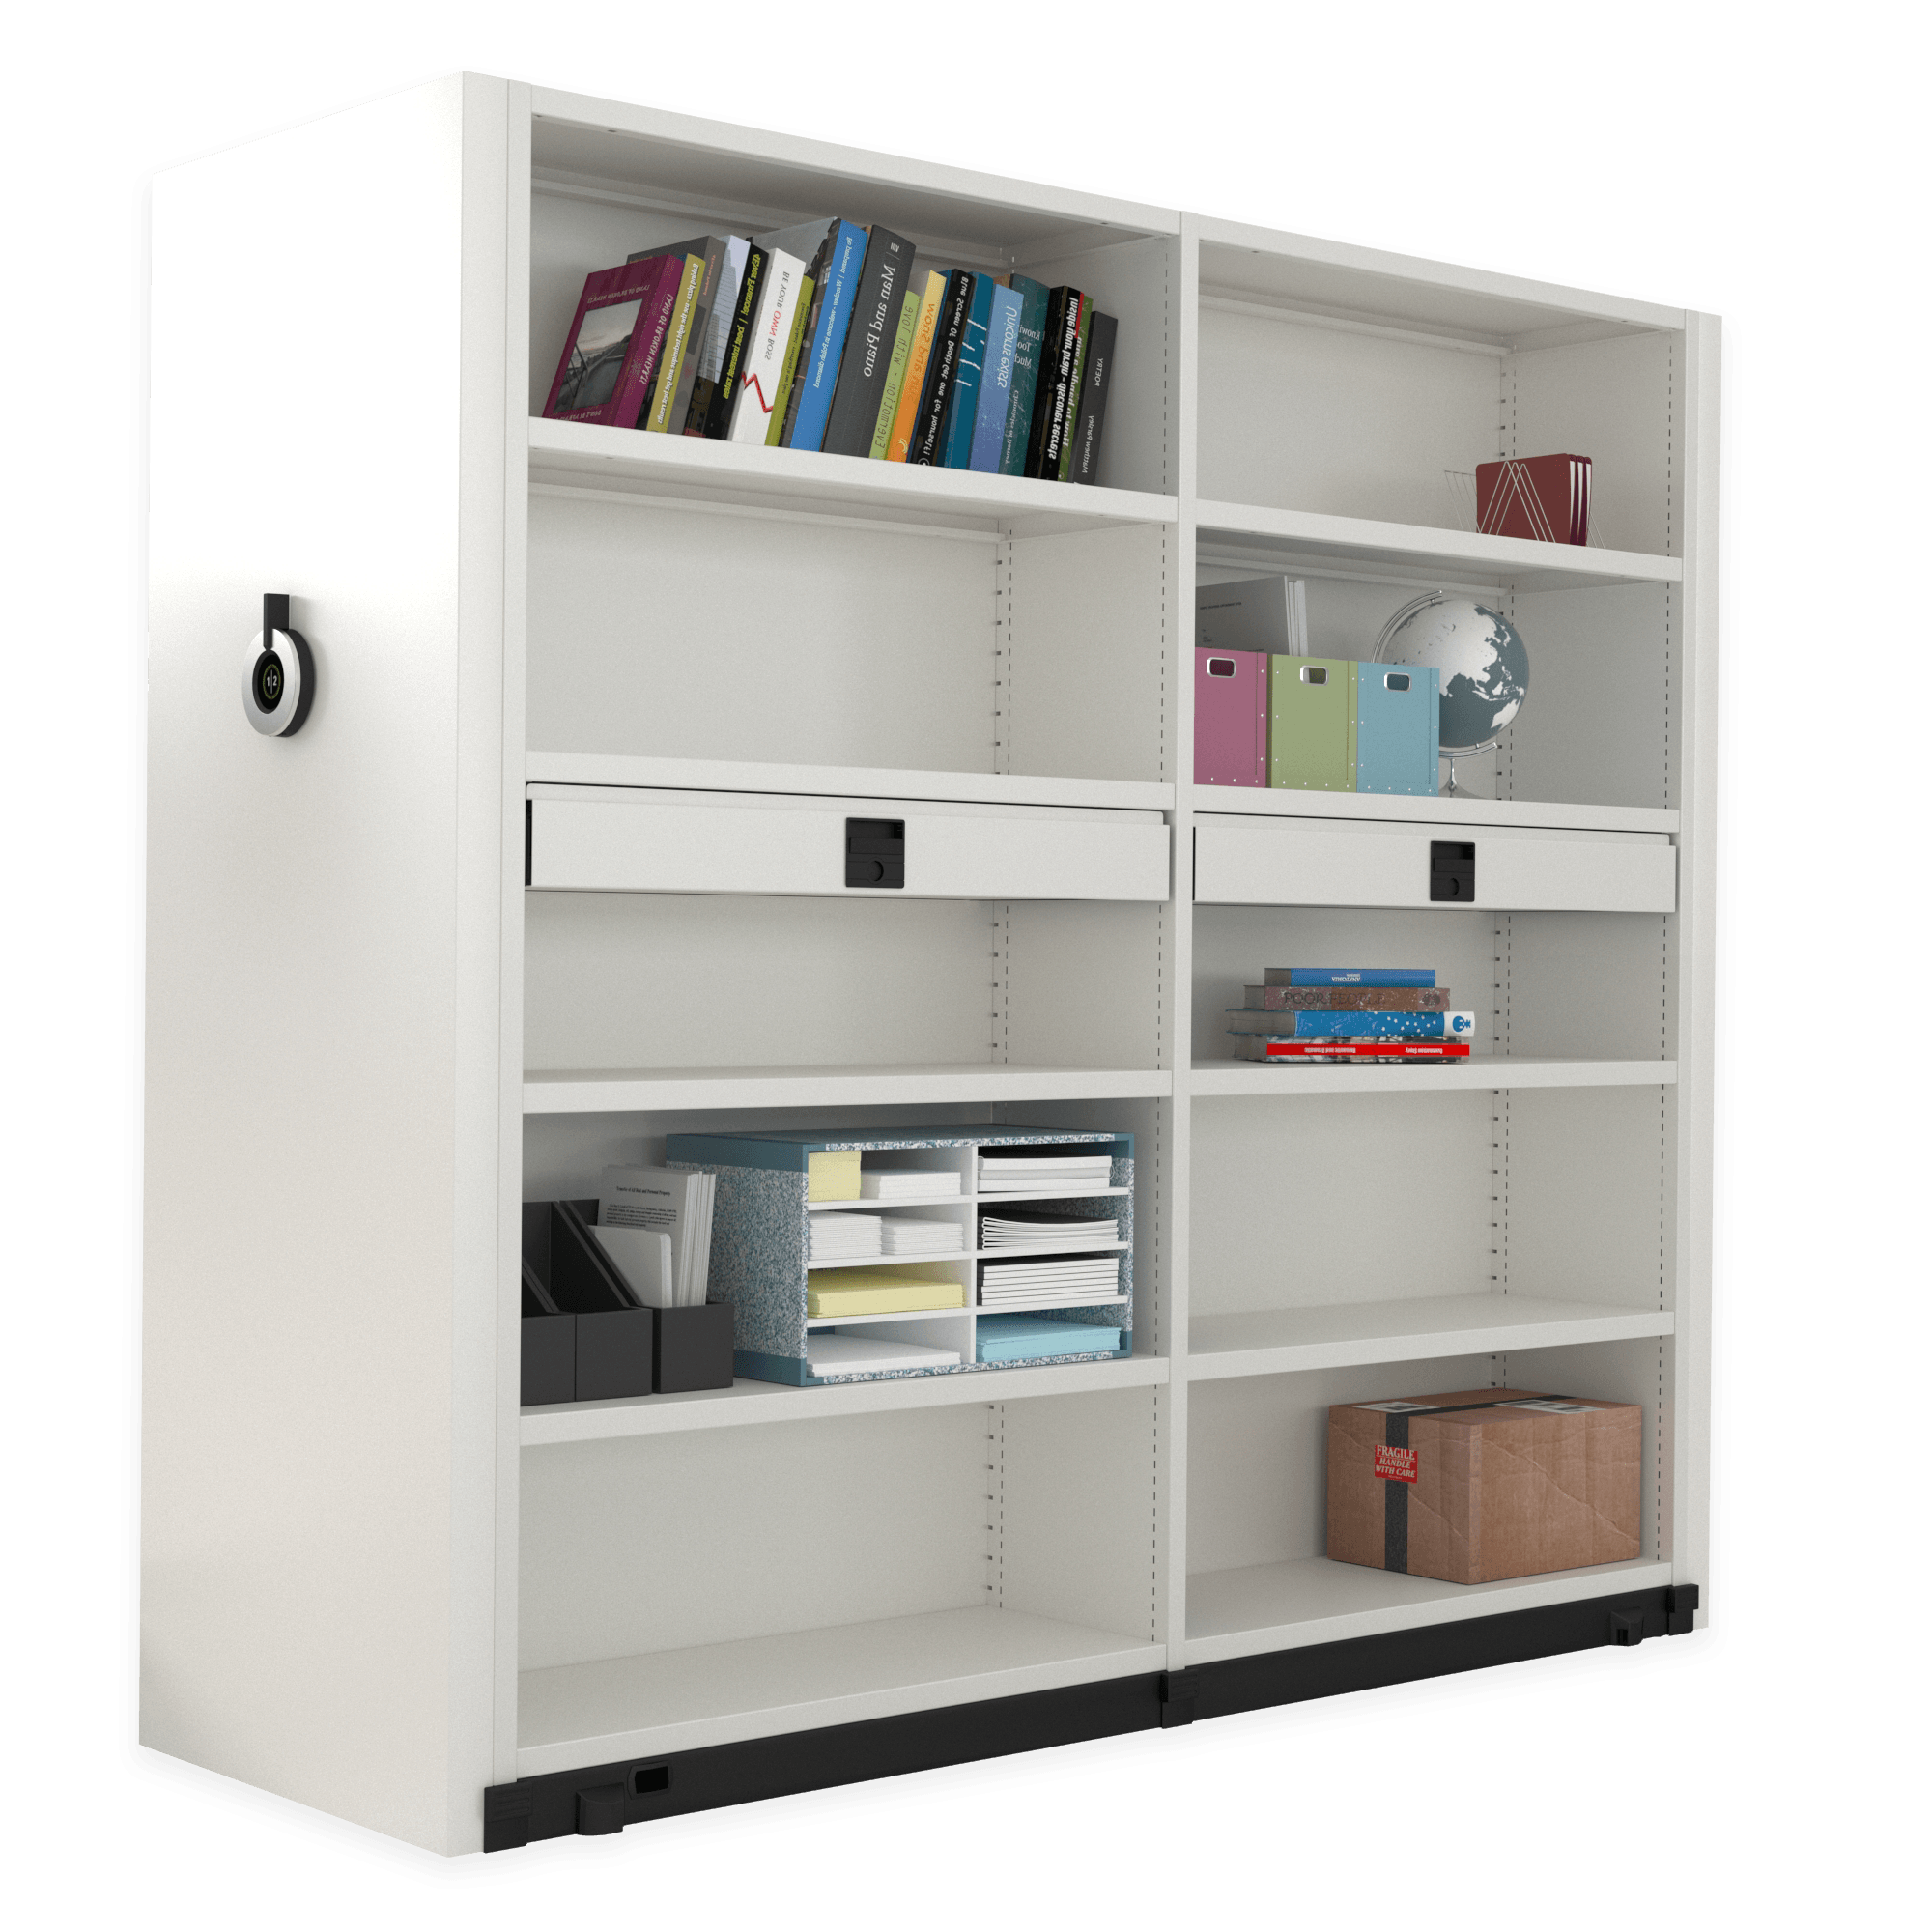 Compactus Dynamic II amenagement tiroirs